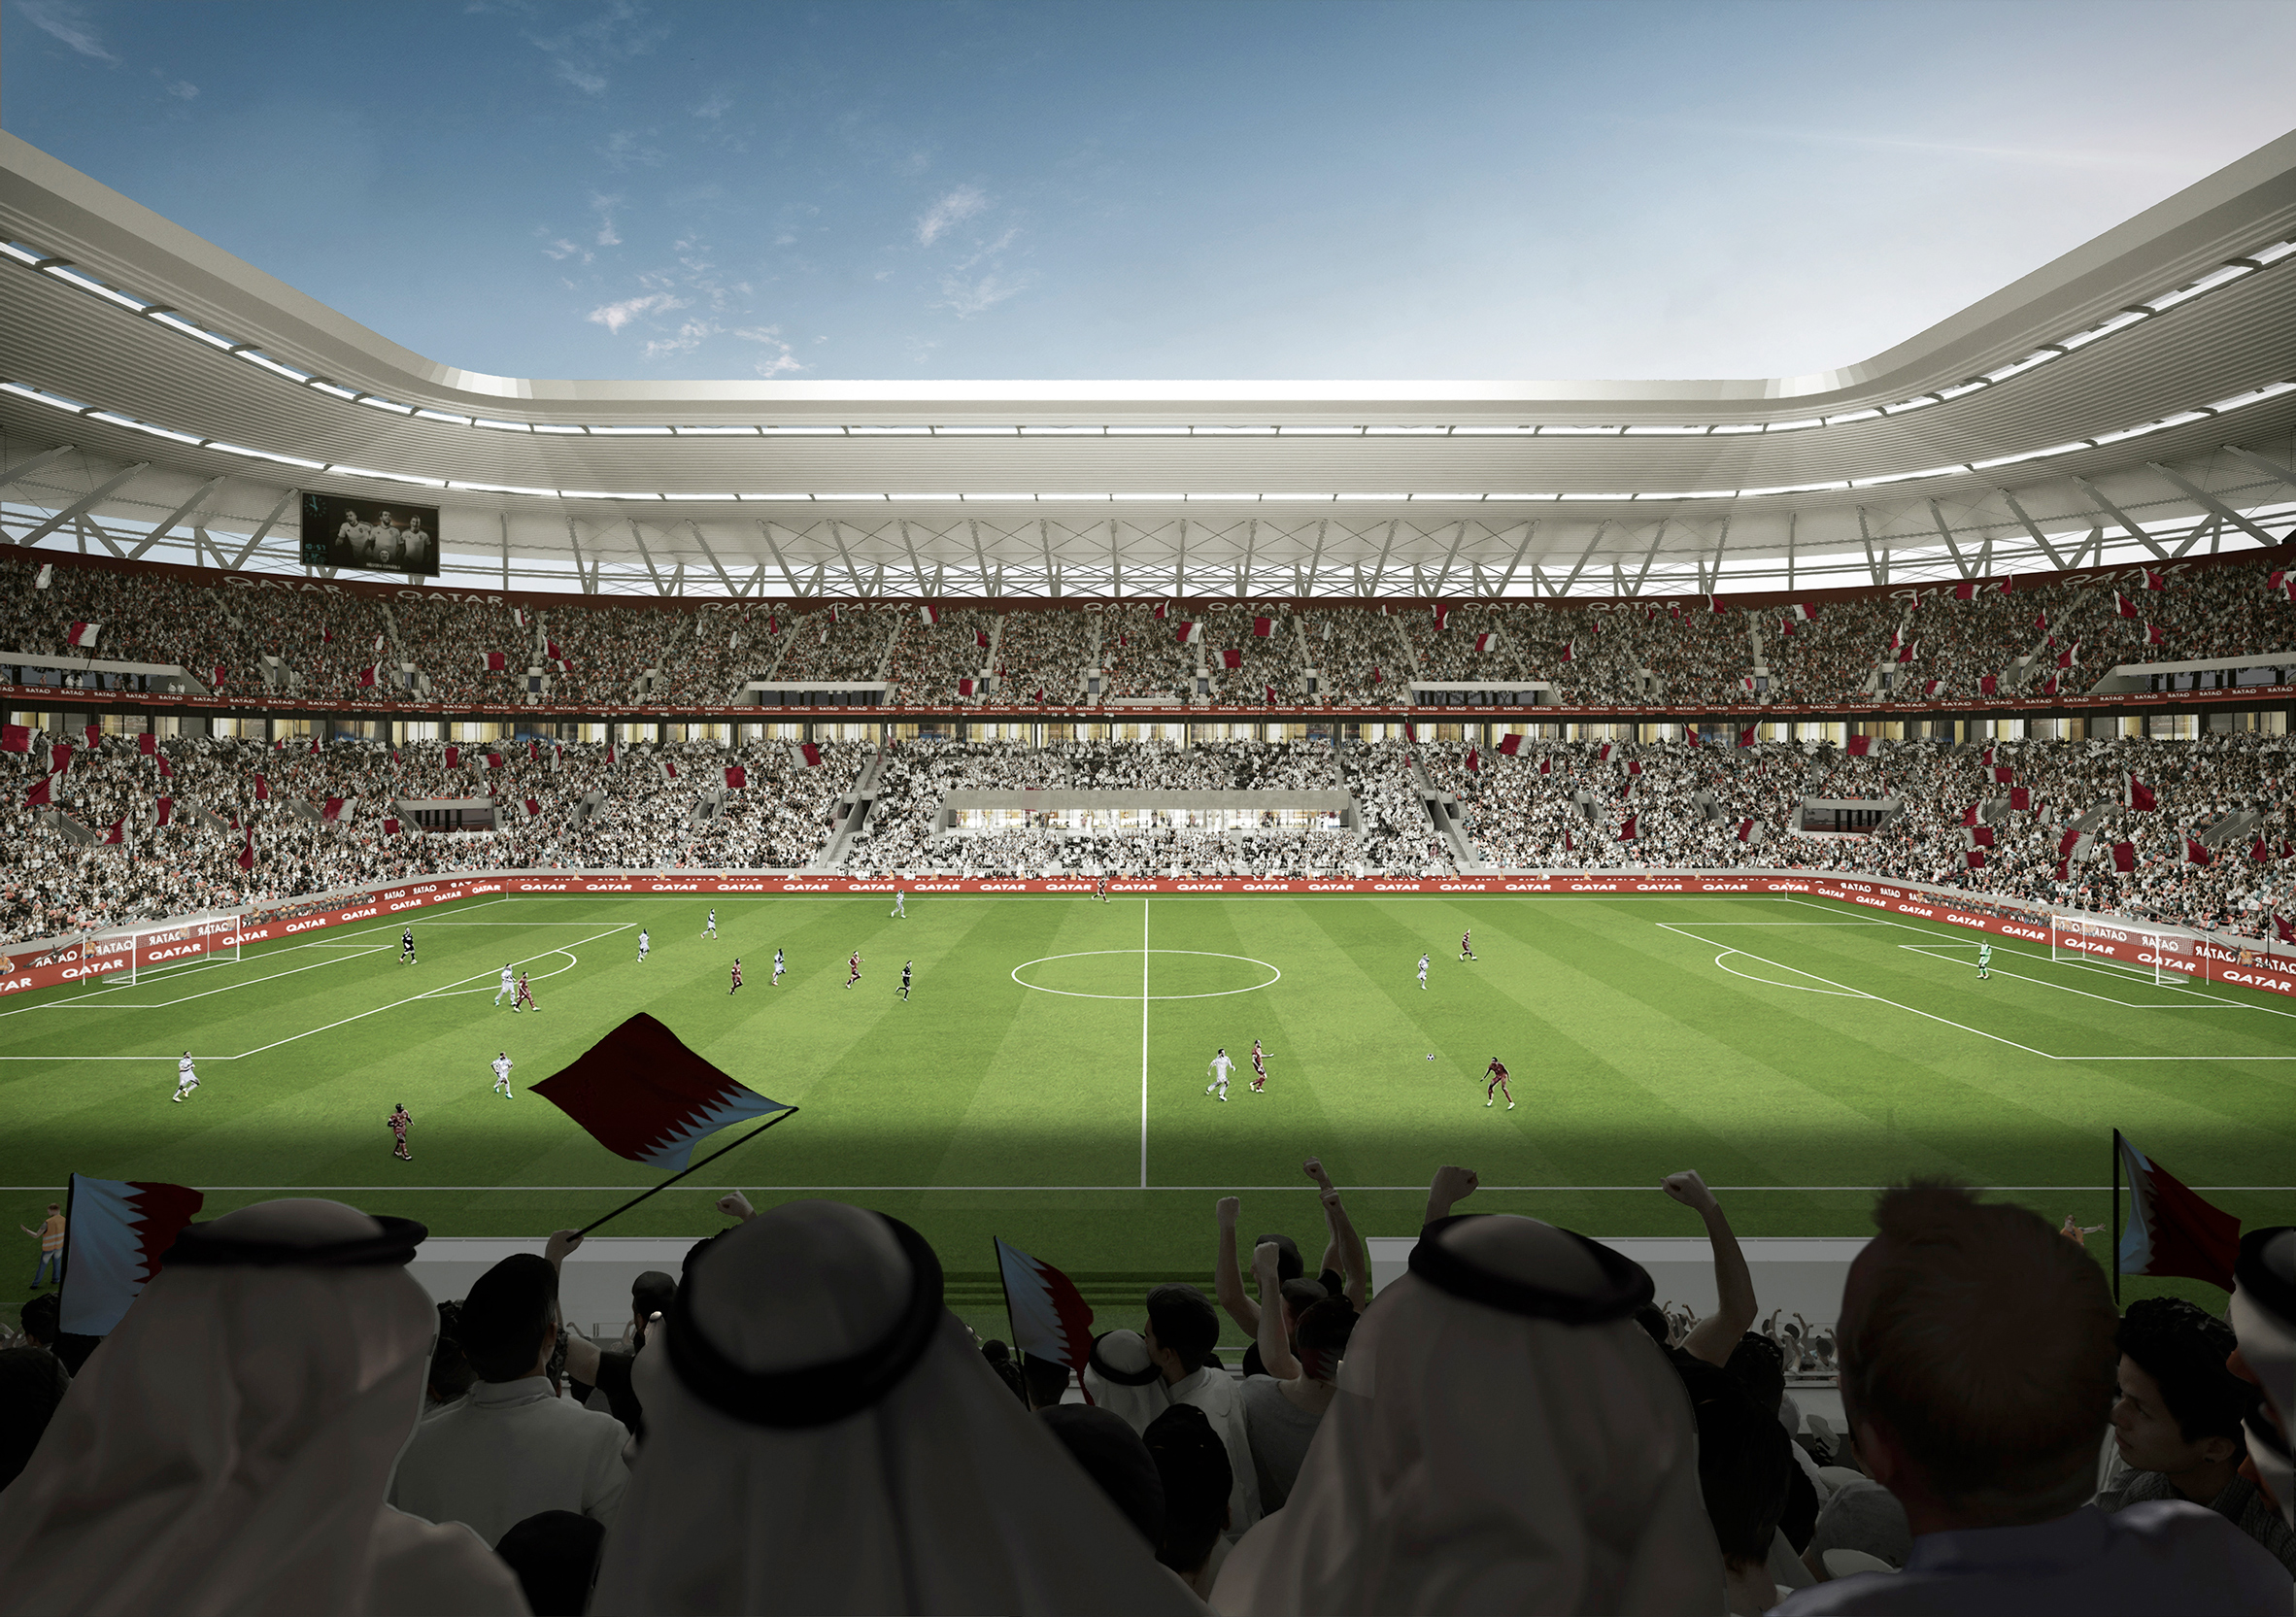 Ras Abu Aboud Stadium